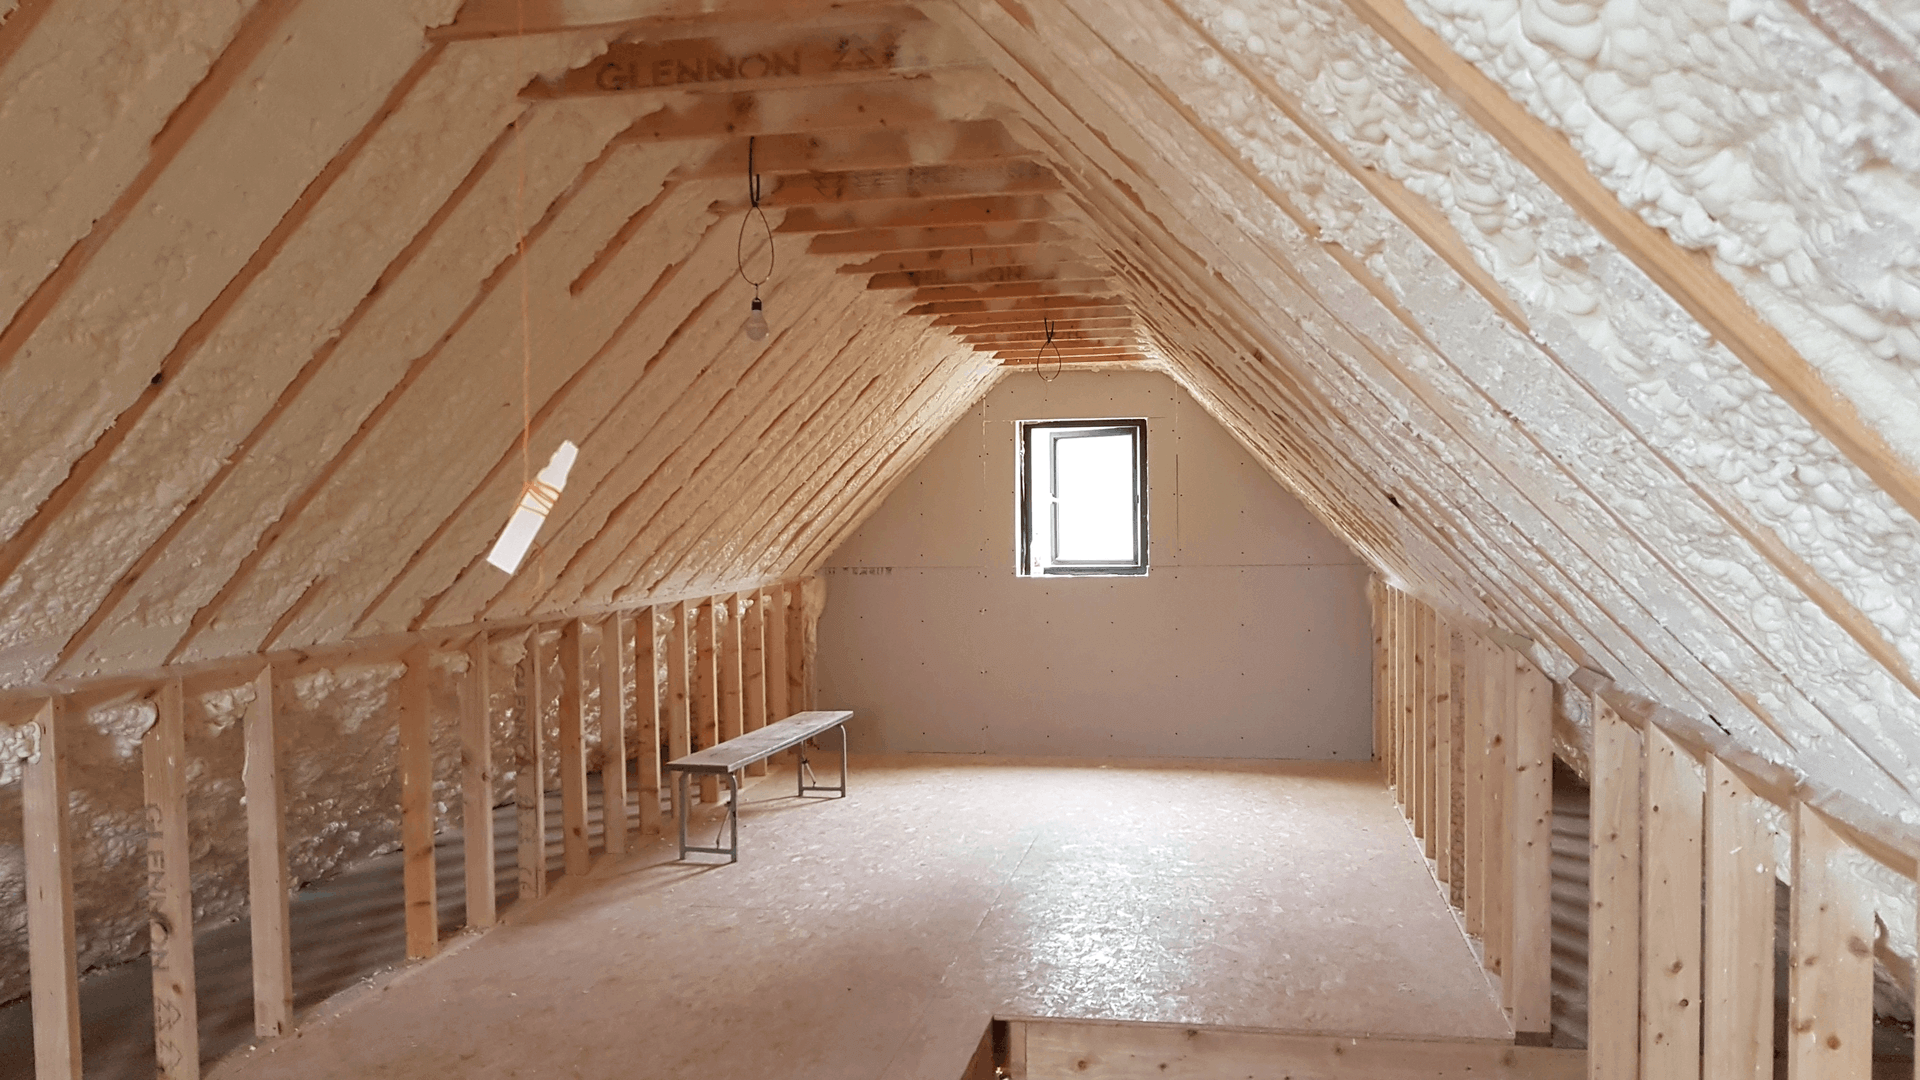 Roofers Dudlin Attic Insulated